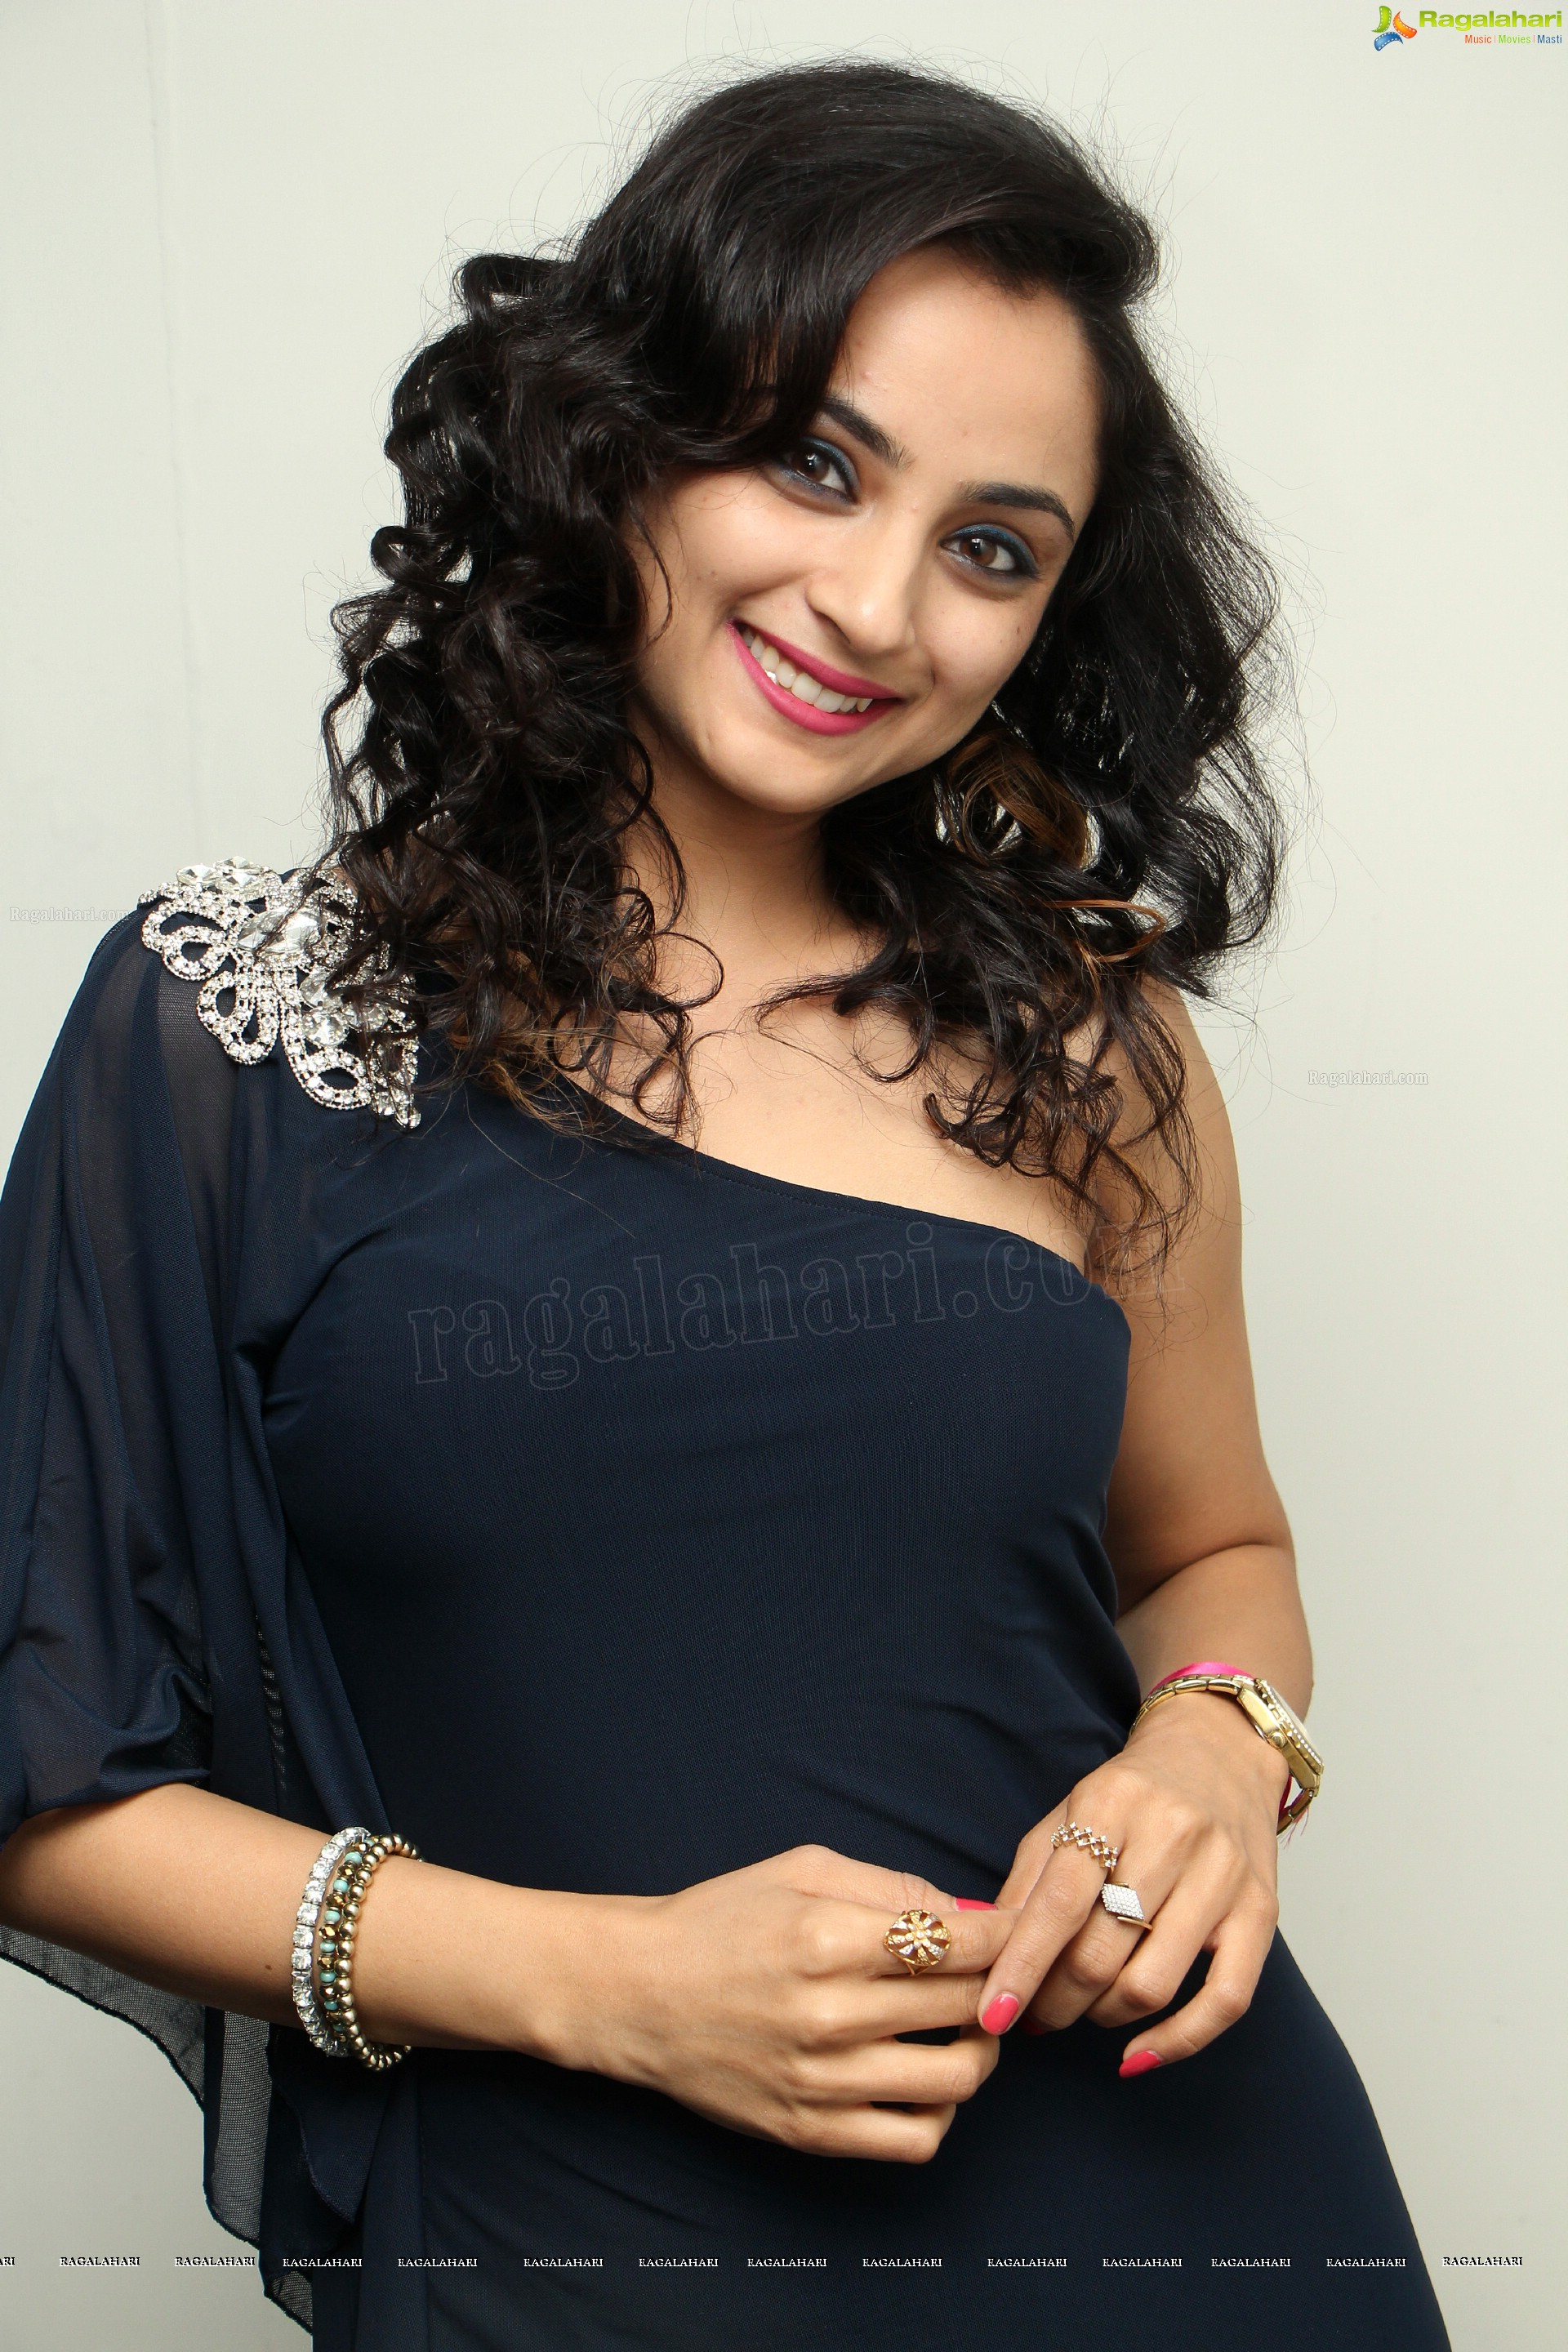 Madirakhi Mundle (High Definition)